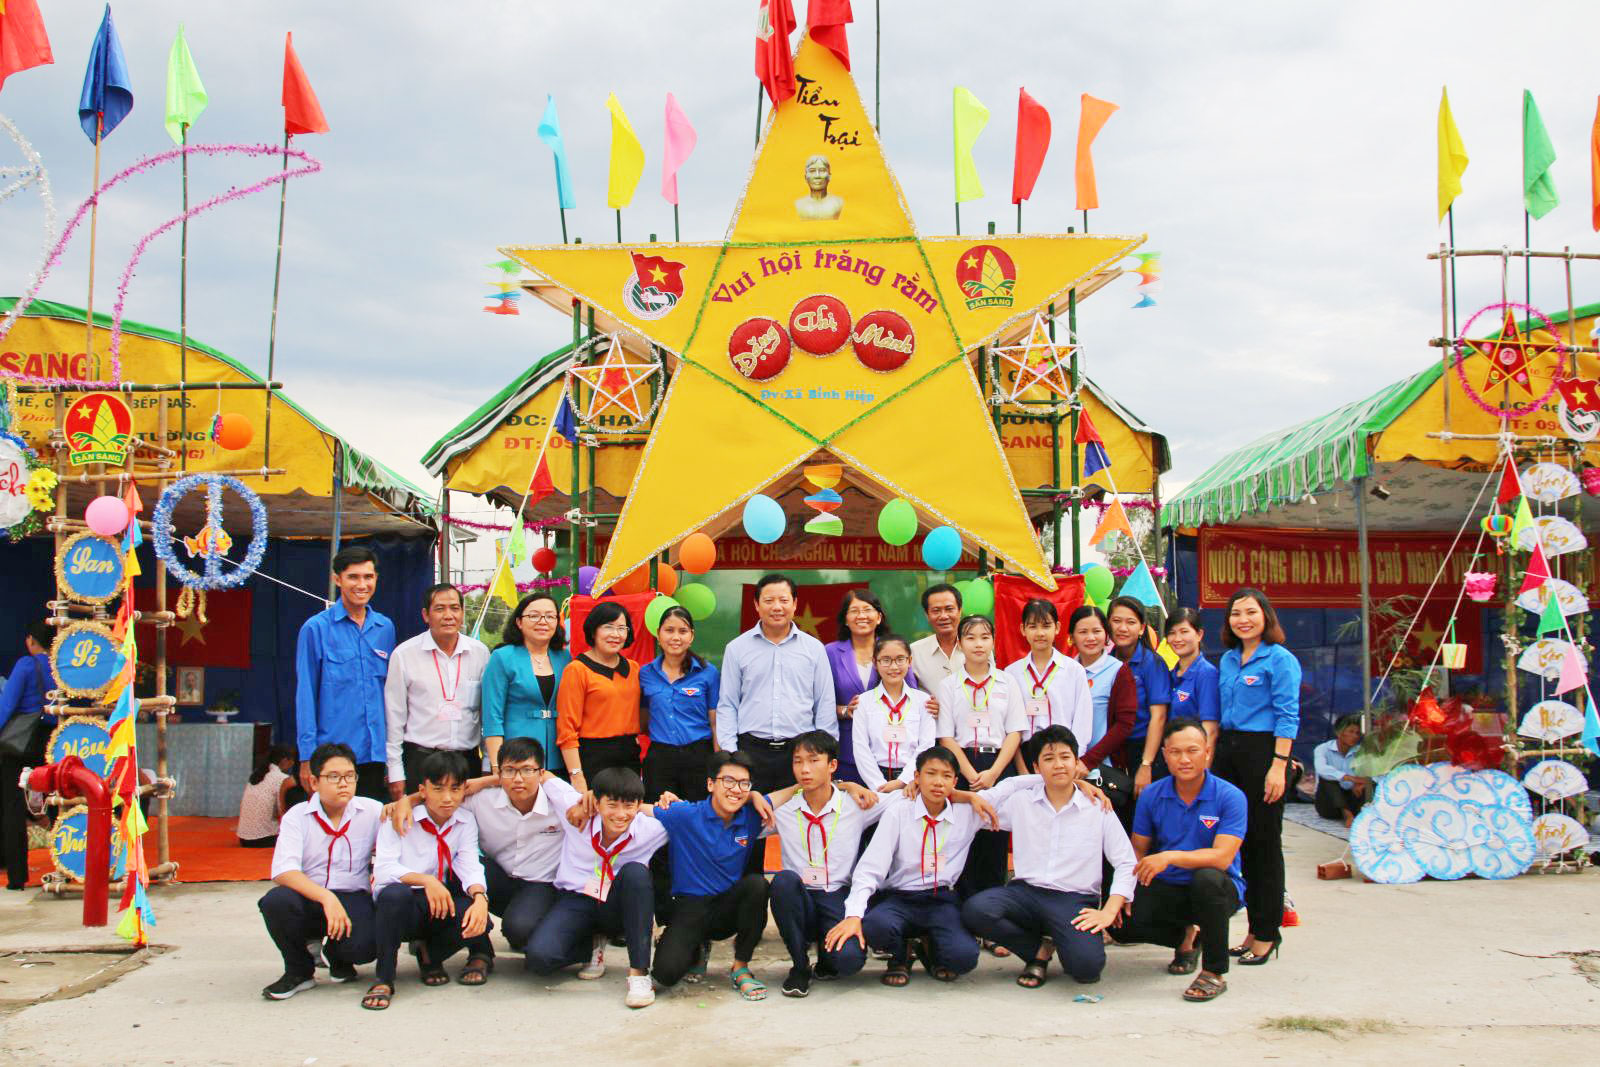 The Long An People's Committee organizes the Mid-Autumn Festival with the theme